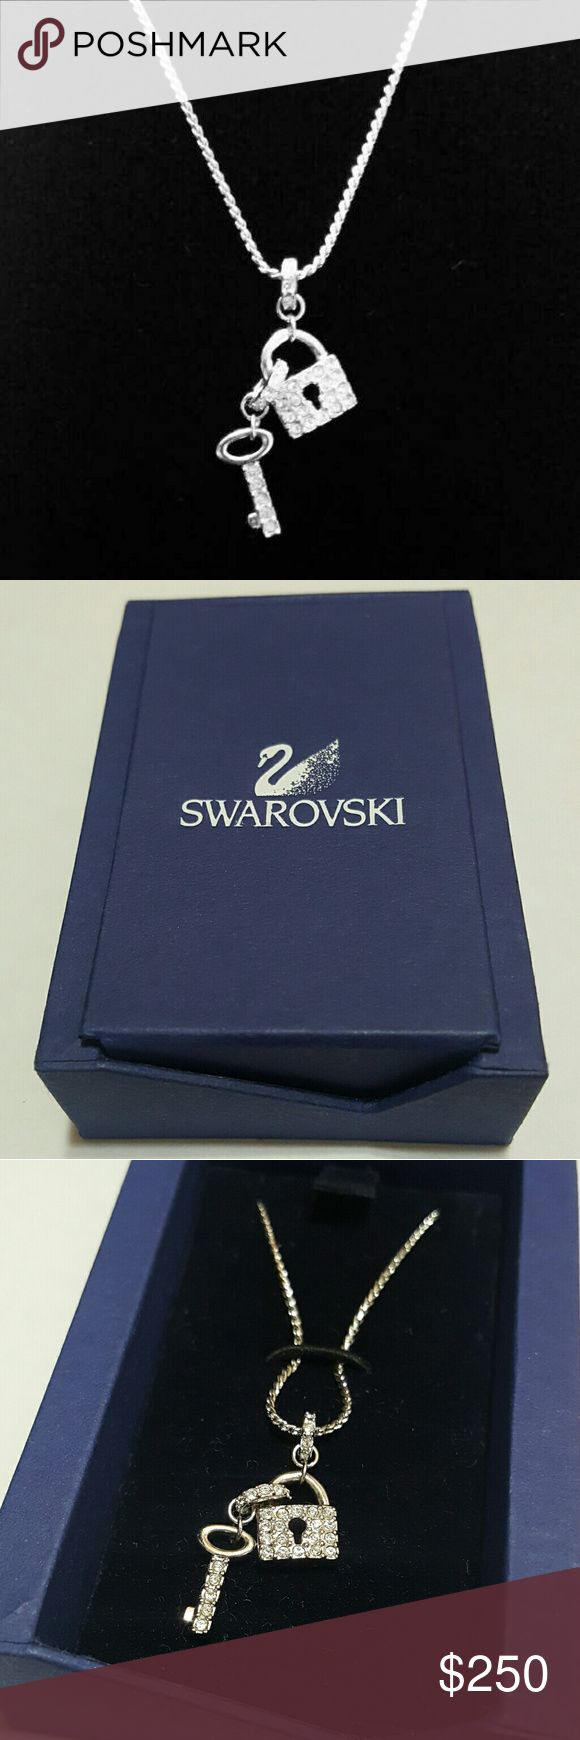 ⤵⤵Authentic Swarovski Lock and Key Necklace Swarovski Lock and Key. Best Valentine's Gift! ABSOLUTELY NWB! Been stored. Guarantee Authentic. Rhodium Plated. Color will never change. Comes wt original box. No missing stones. Prestige Condition! Come visit for great selection of high end name brand accessories and handbag replacement chain gold curb Italian design available now! 50 over design of twilly scarves and handbag charms. All sales final. Free Gifts for every purchase! While supplies